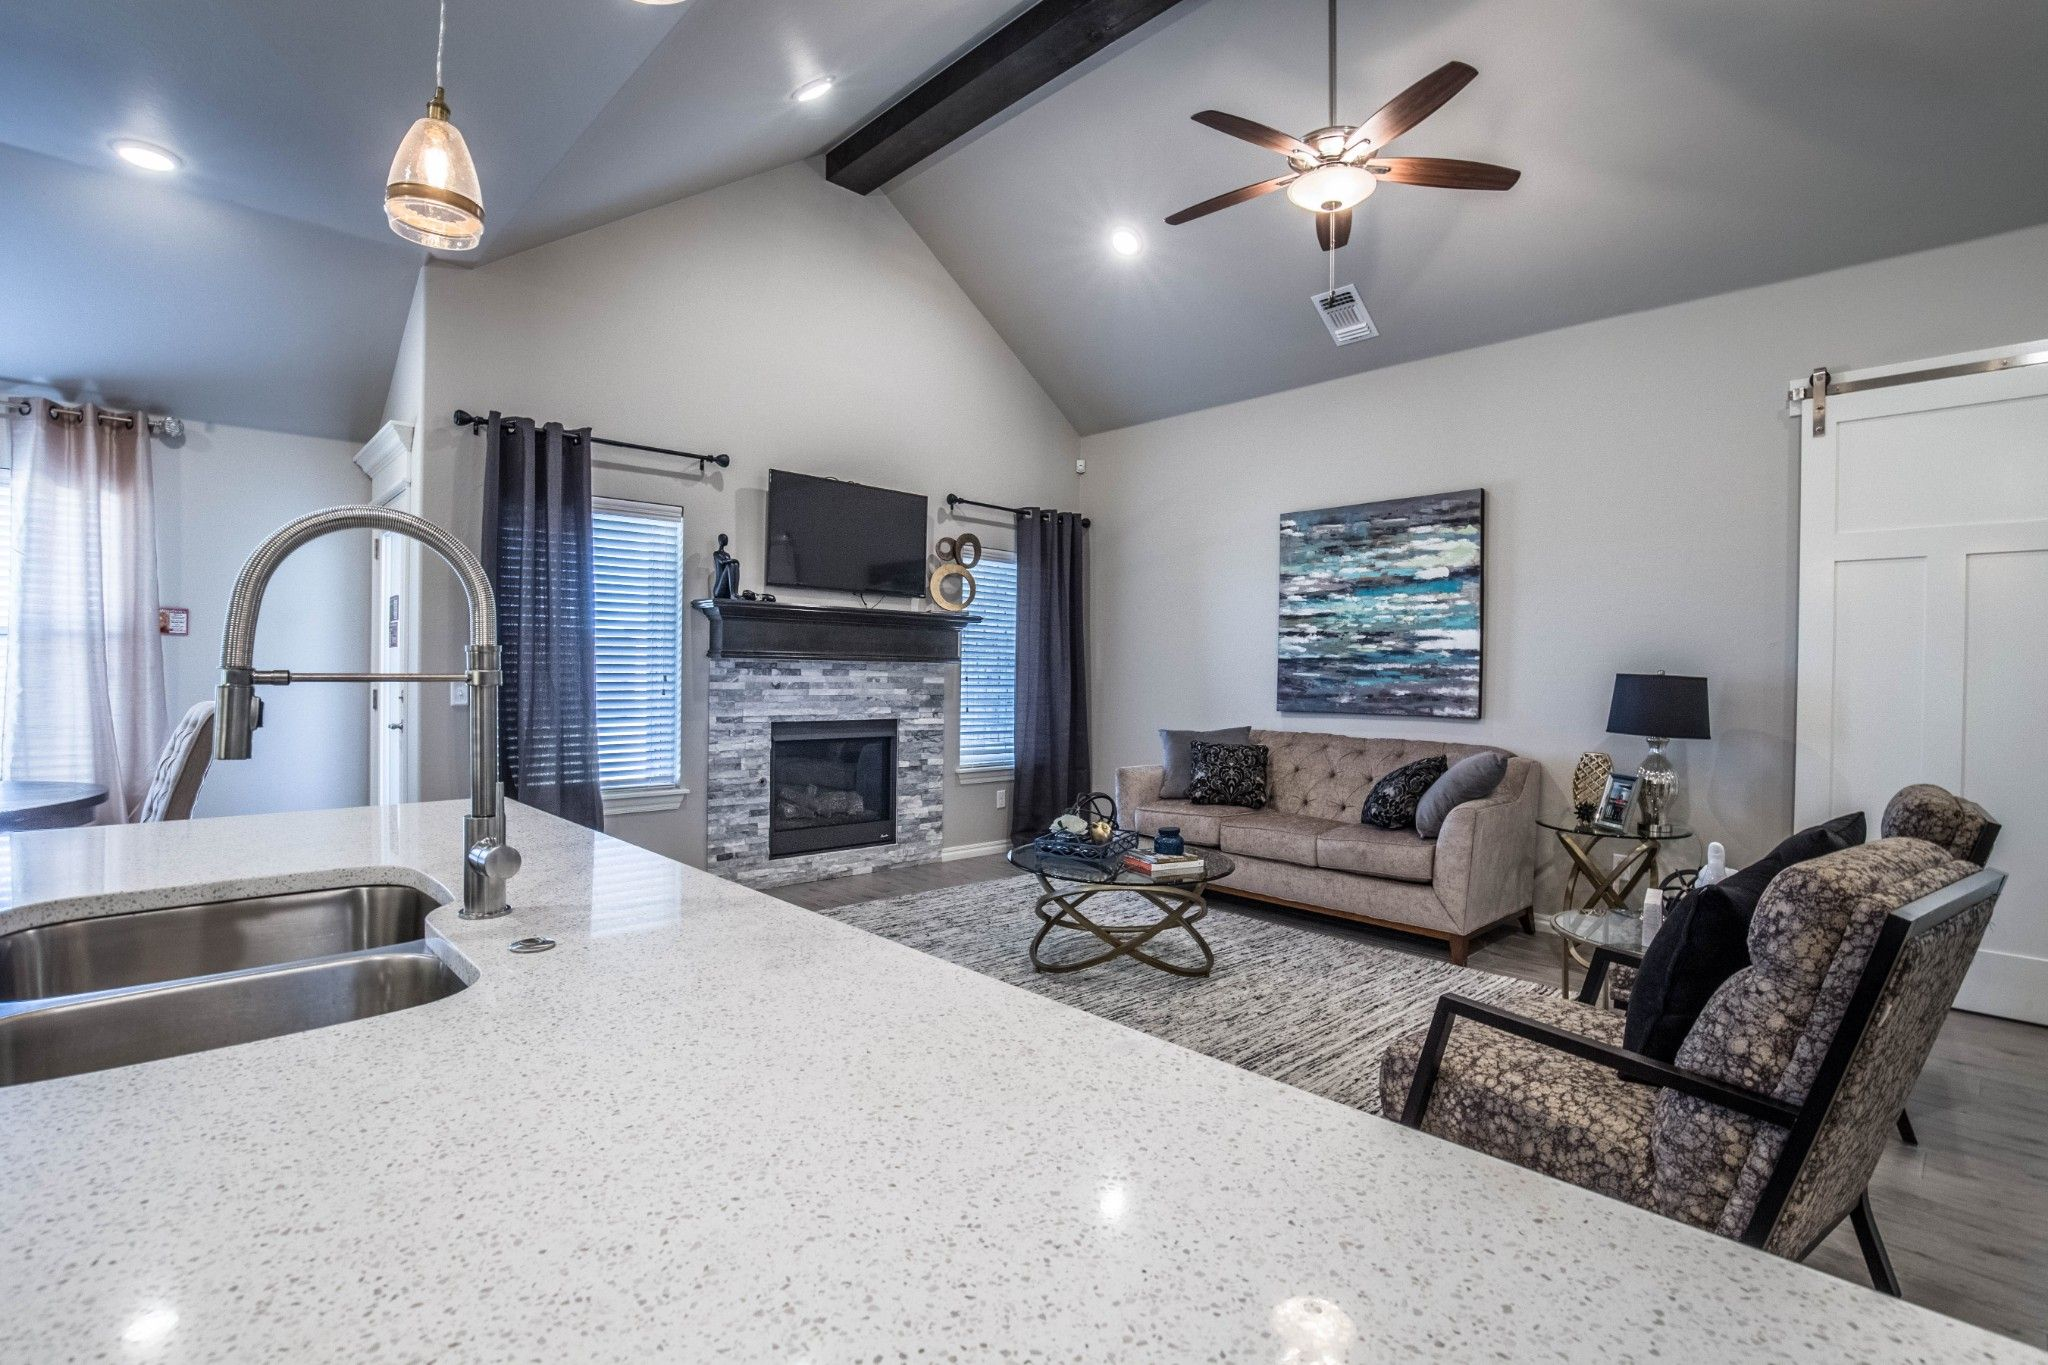 'Council Ridge' by Homes By Taber in Oklahoma City